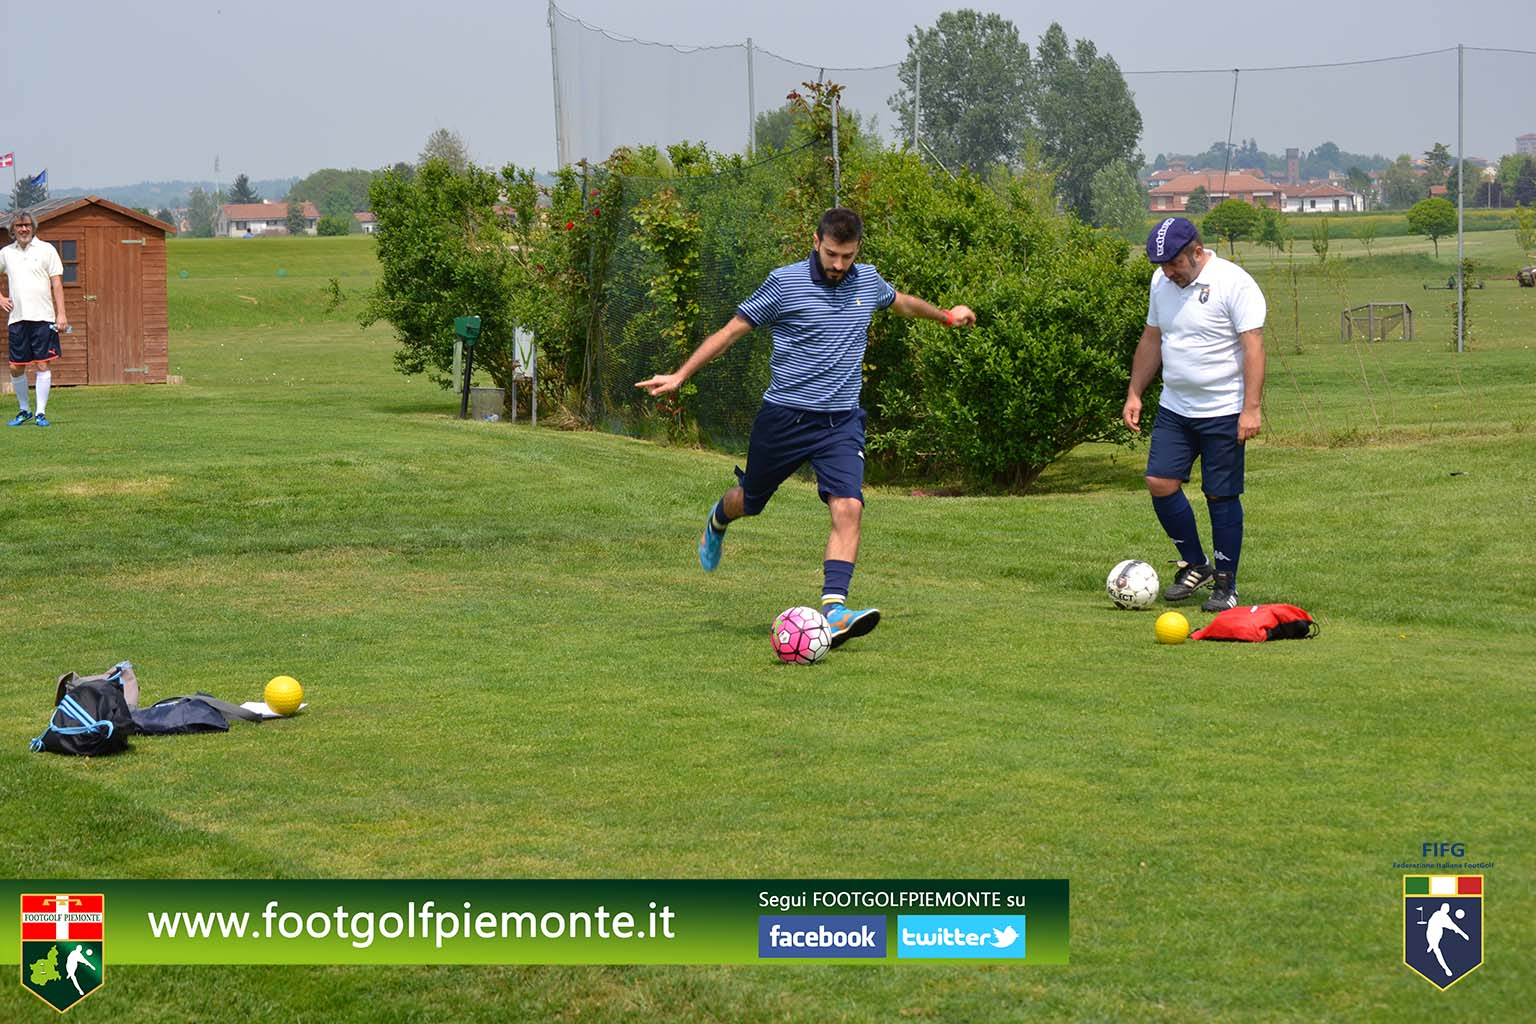 FOTO 9 Regions' Cup Footgolf Piemonte 2016 Golf Città di Asti (At) 30apr16-29